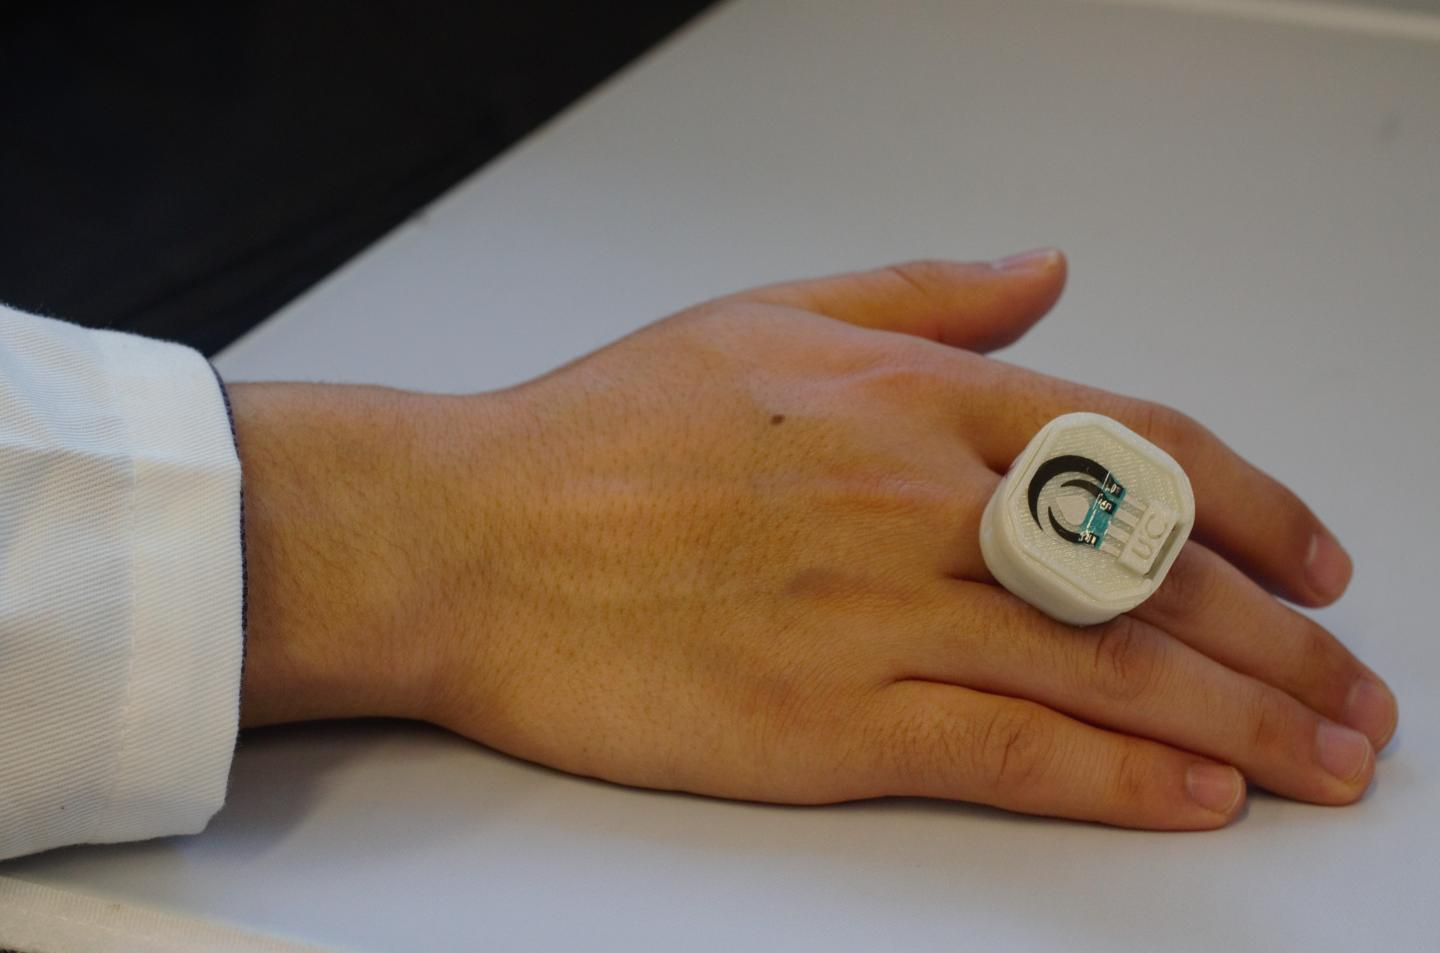 A first-of-its kind ring sensor can detect chemical and biological threats. (American Chemical Society)